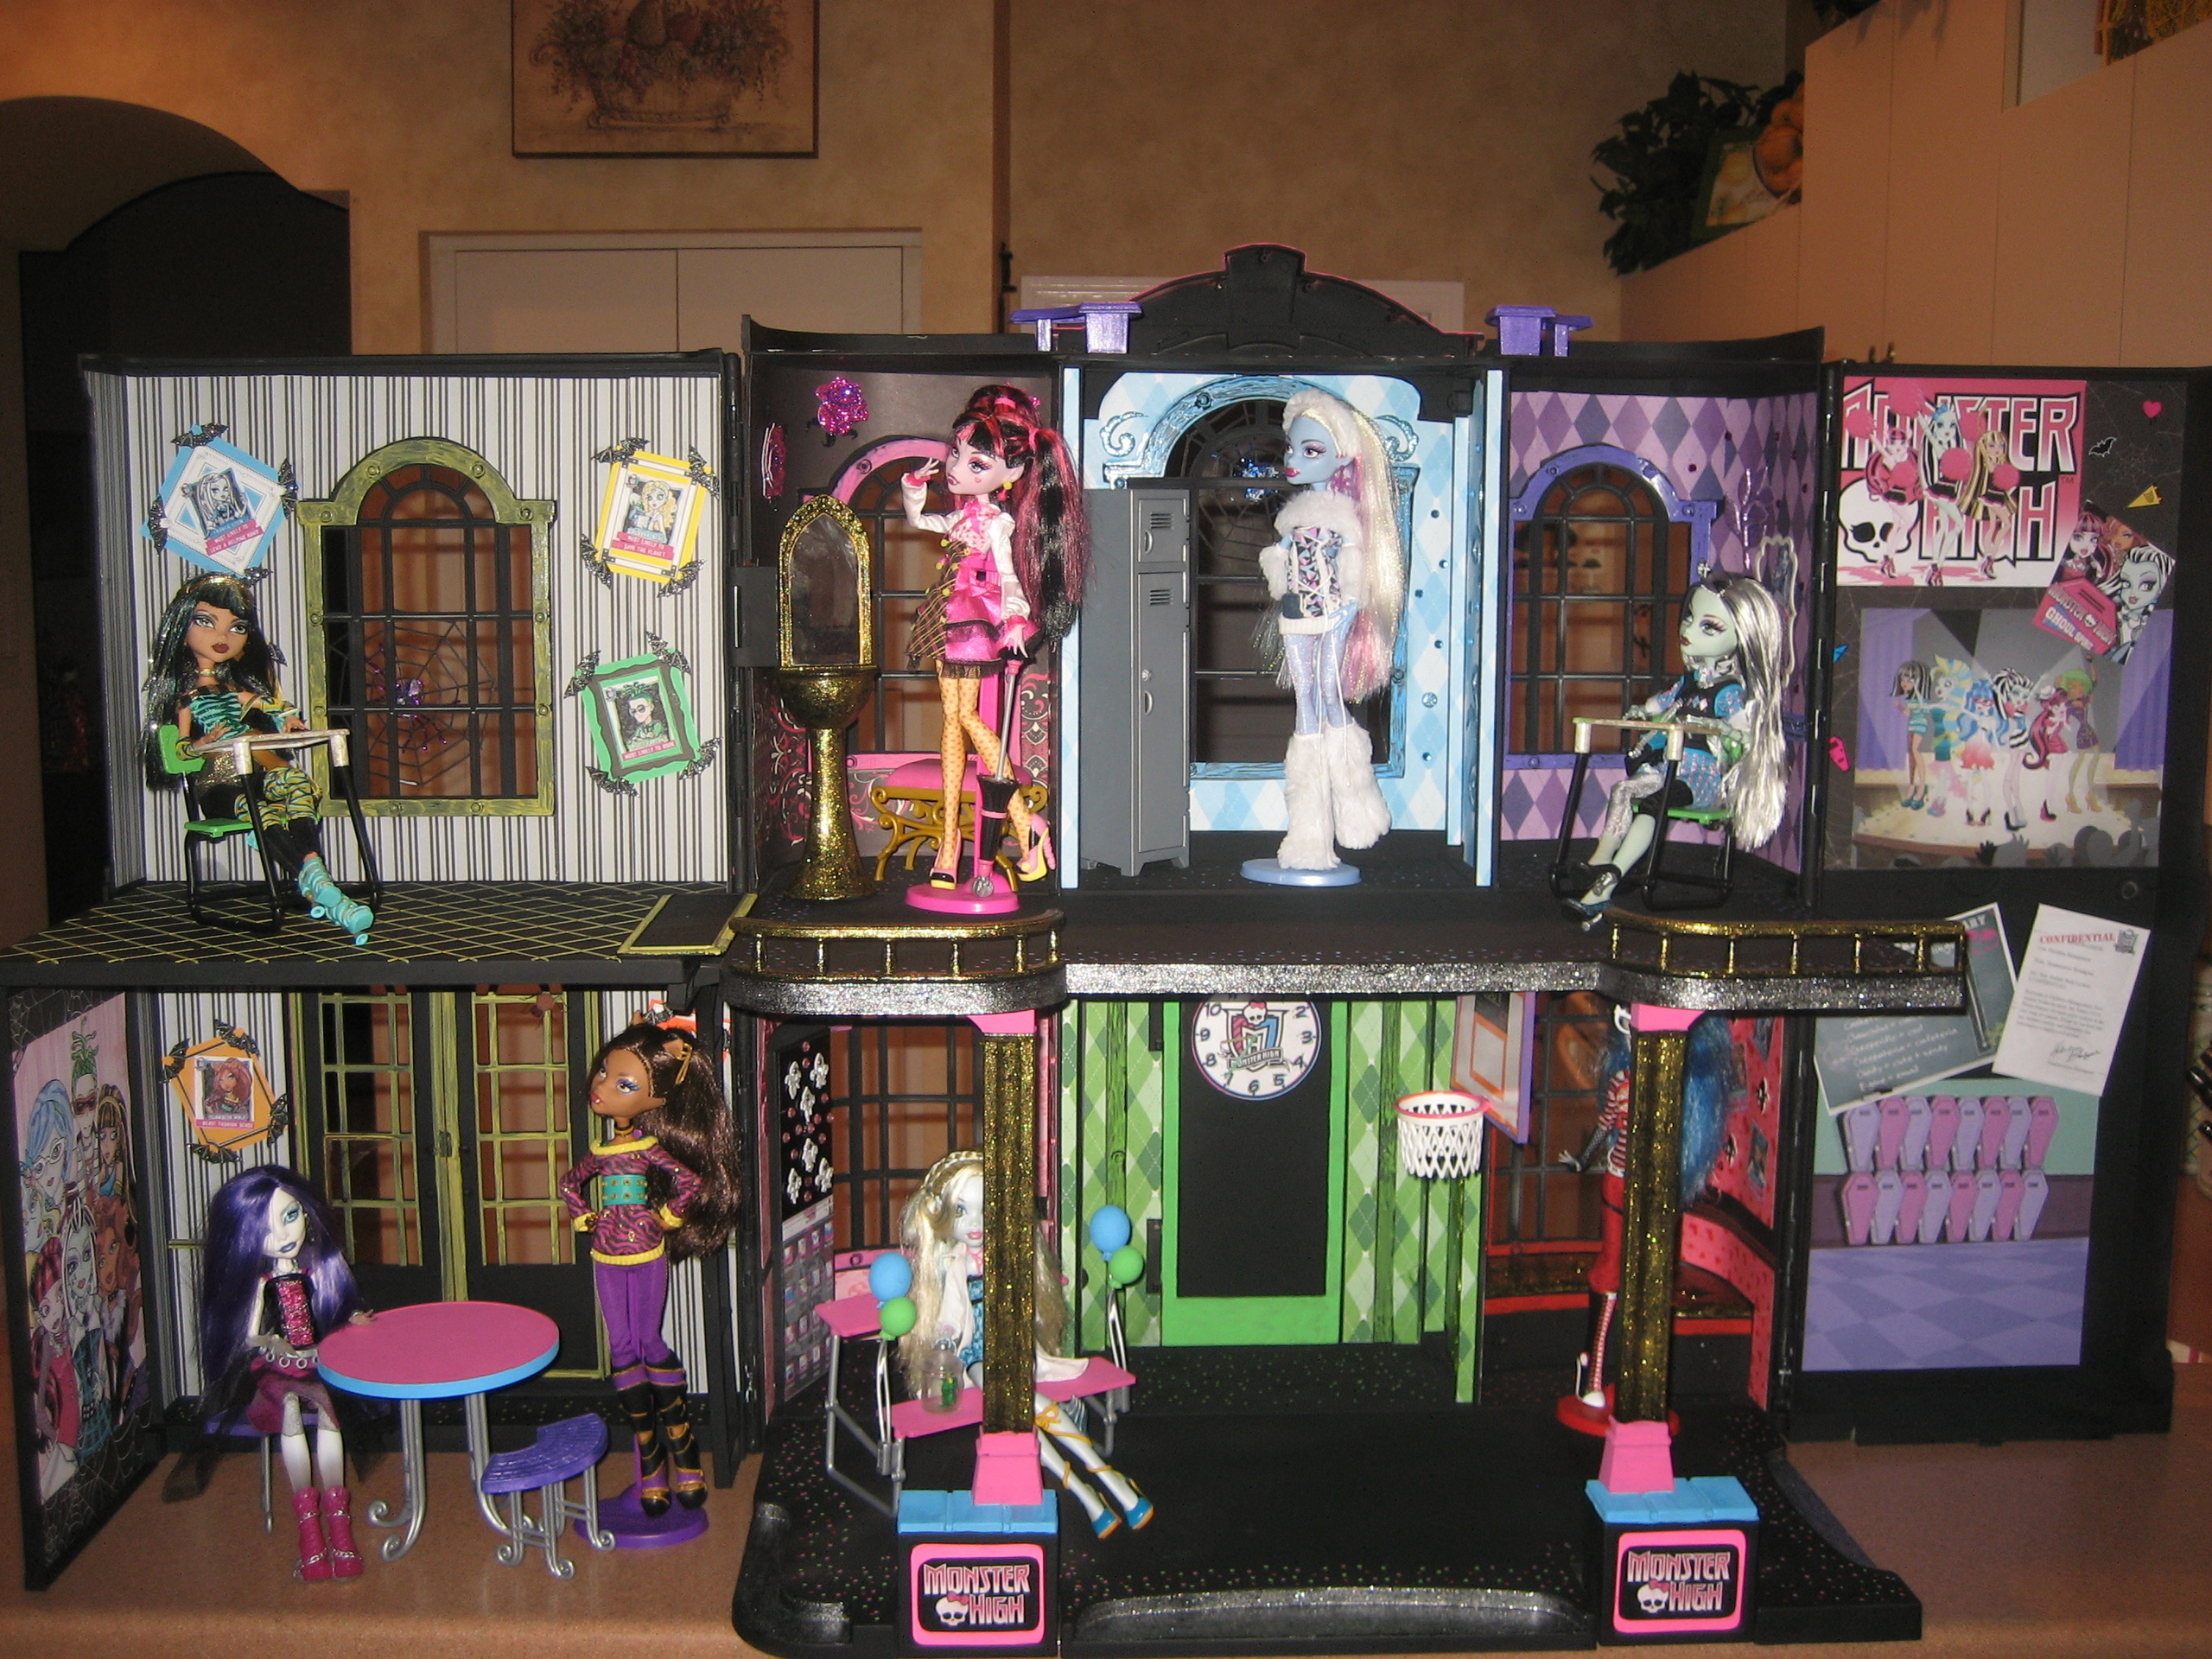 http://images5.fanpop.com/image/photos/25800000/Another-cool-MH-house-monster-high-club-25860976-2560-1920.jpg